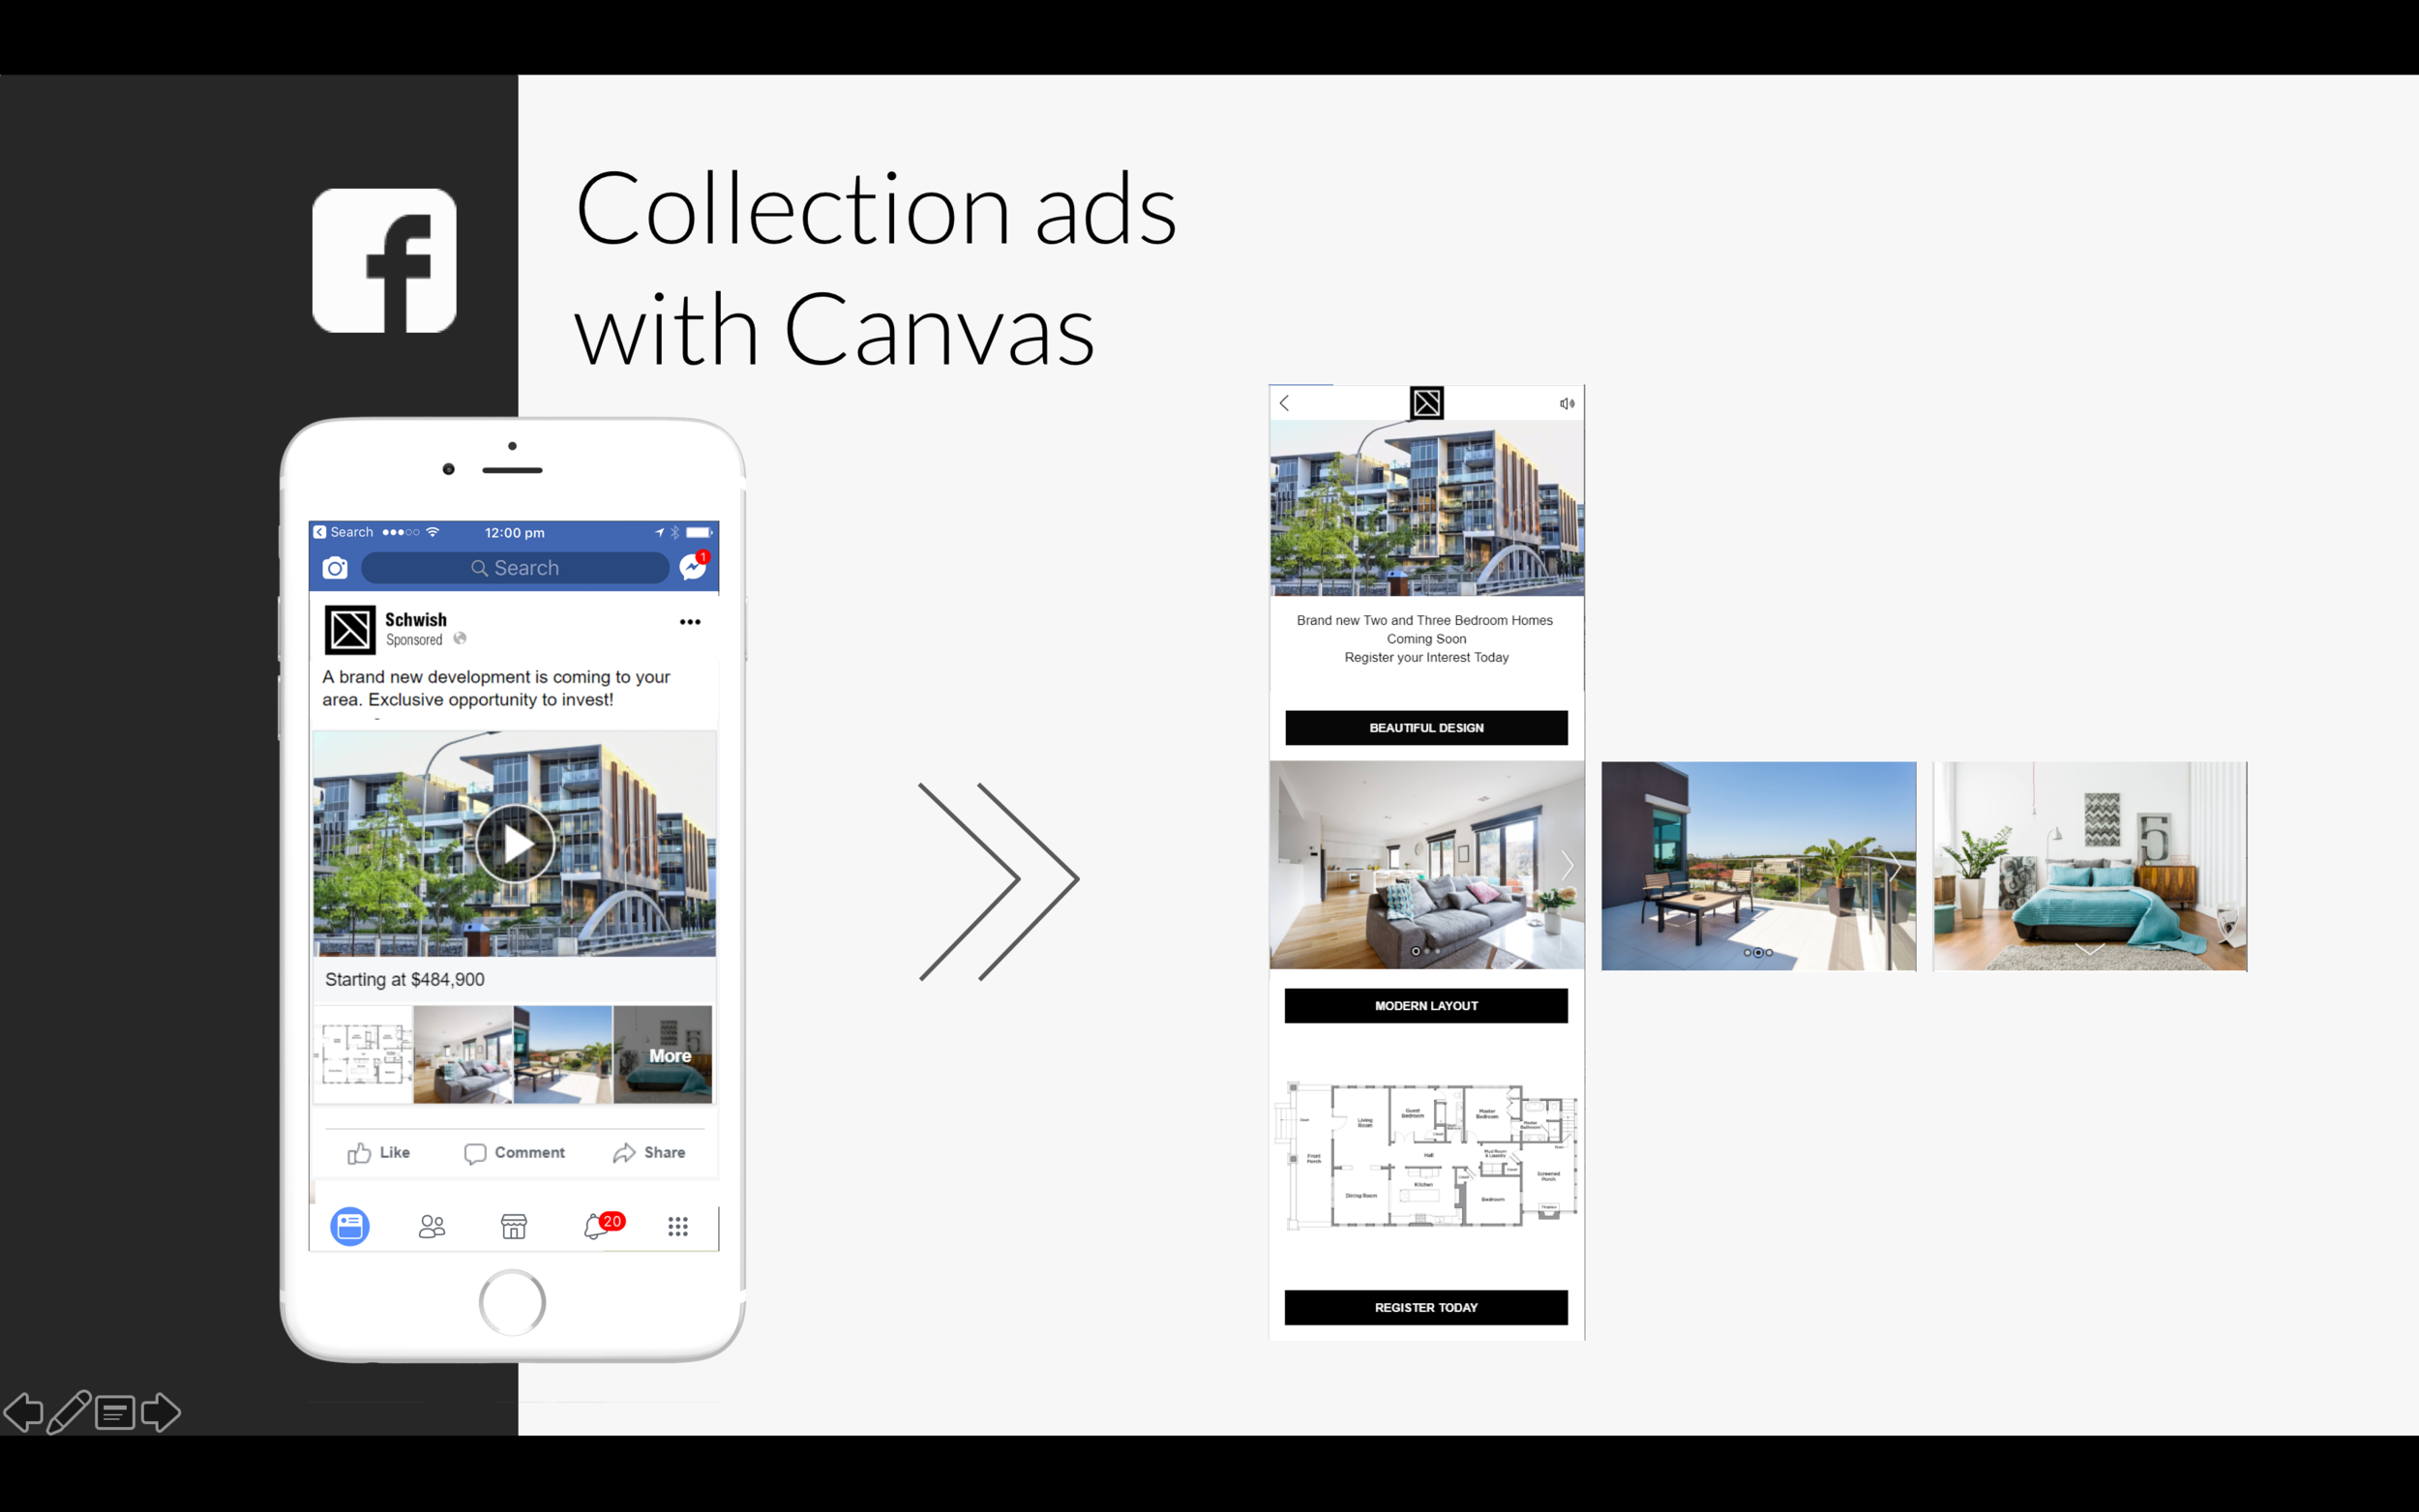 Facebook adds - Single and canvas